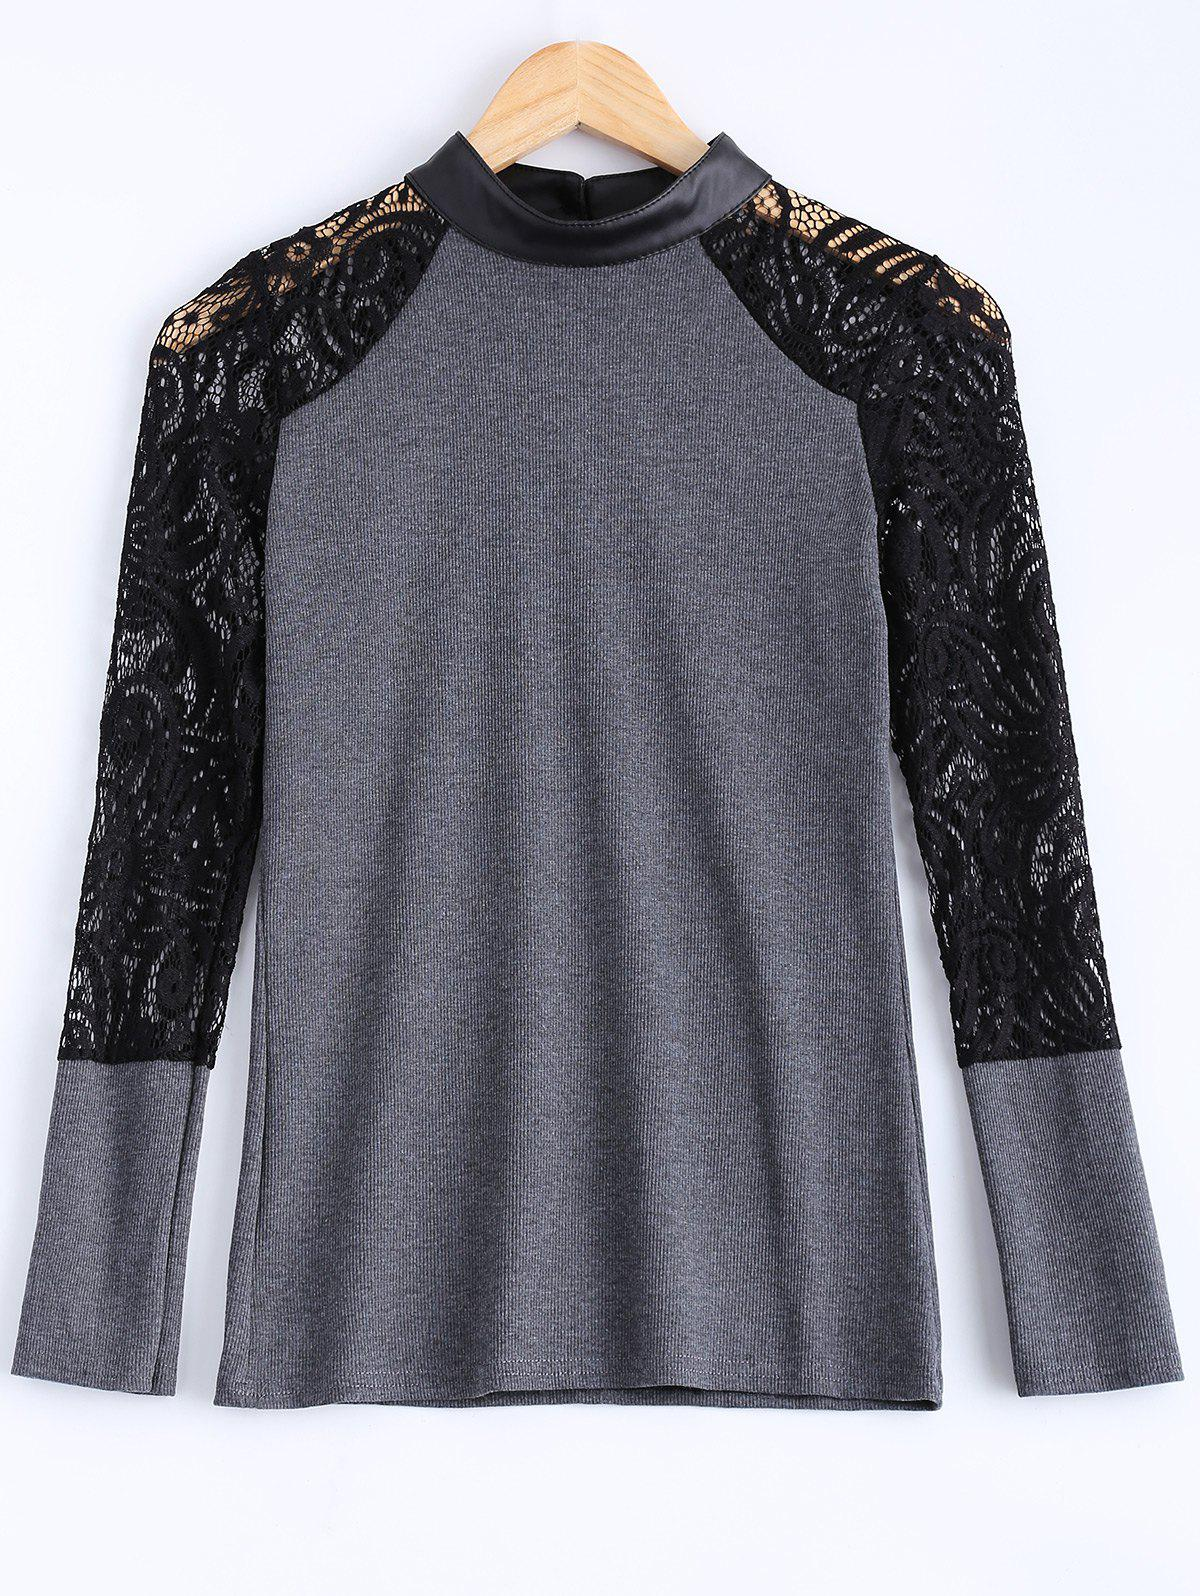 Lace PU Leather Knitted Top For Women - GRAY 2XL